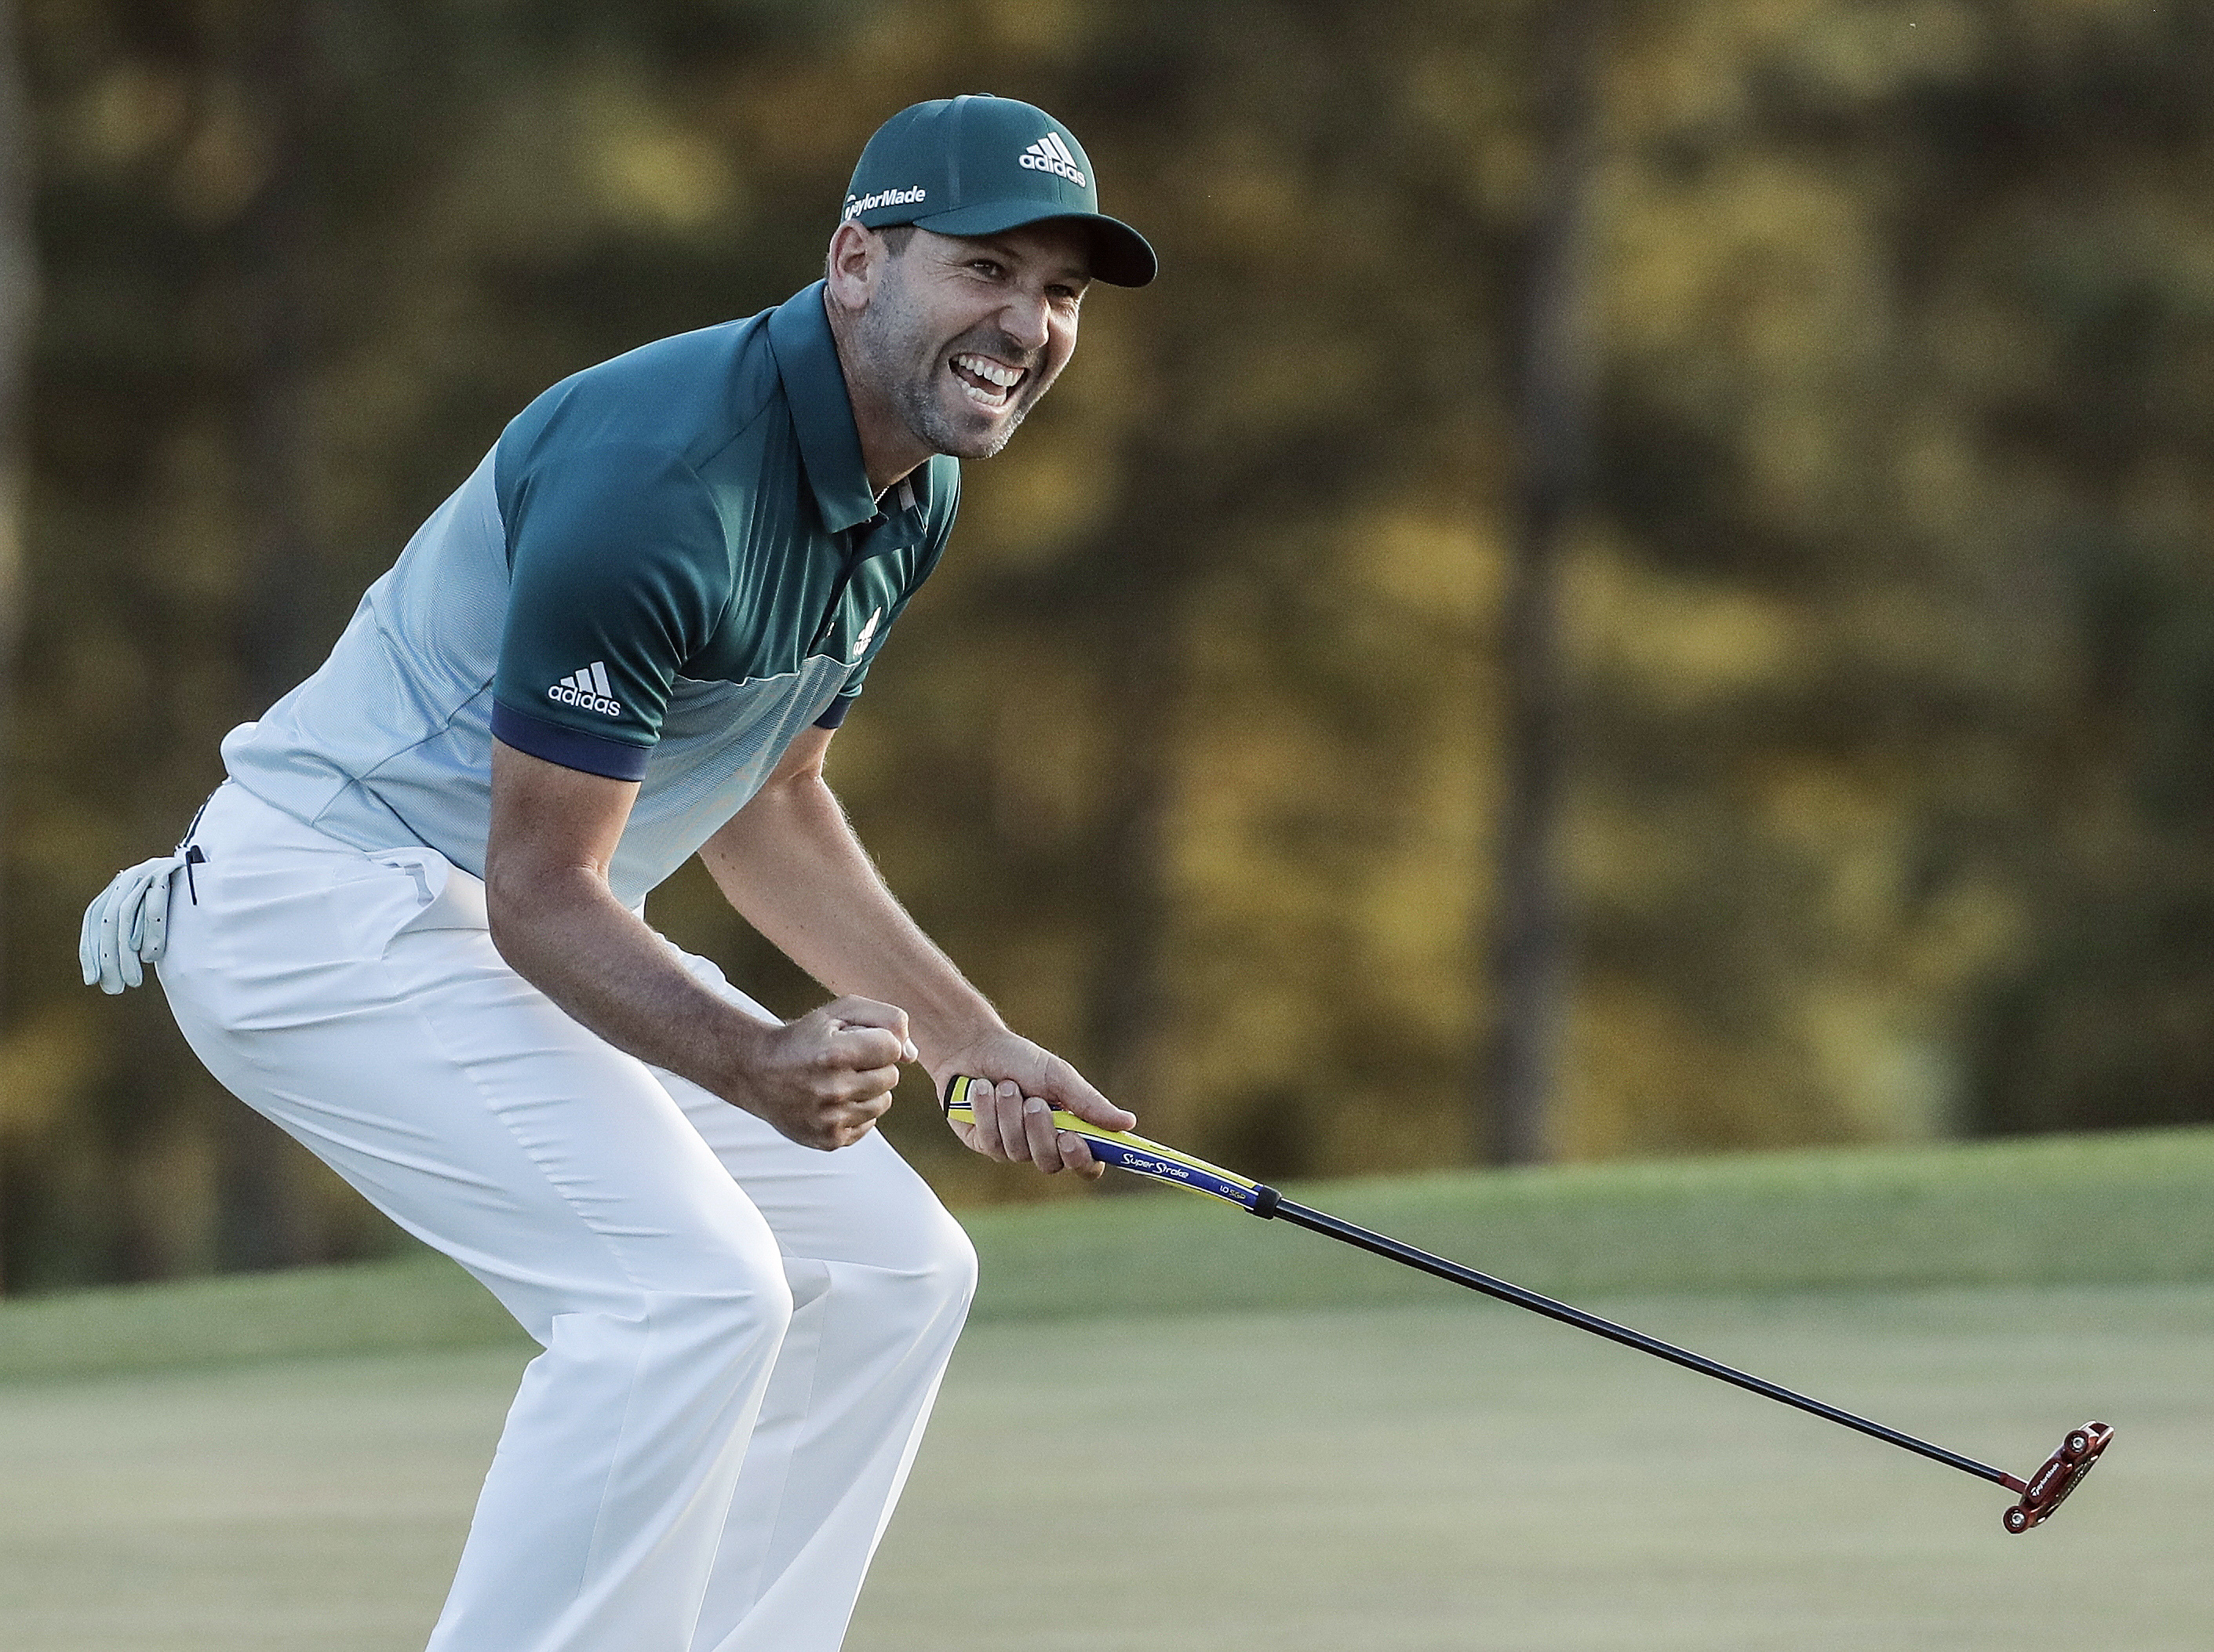 FILE - In  this April 9, 2017, file photo, Sergio Garcia, of Spain, reacts after making his birdie putt on the 18th green to win the Masters golf tournament in a playoff in Augusta, Ga. Garcia is loving his time at the U.S. Open, having finally captured t